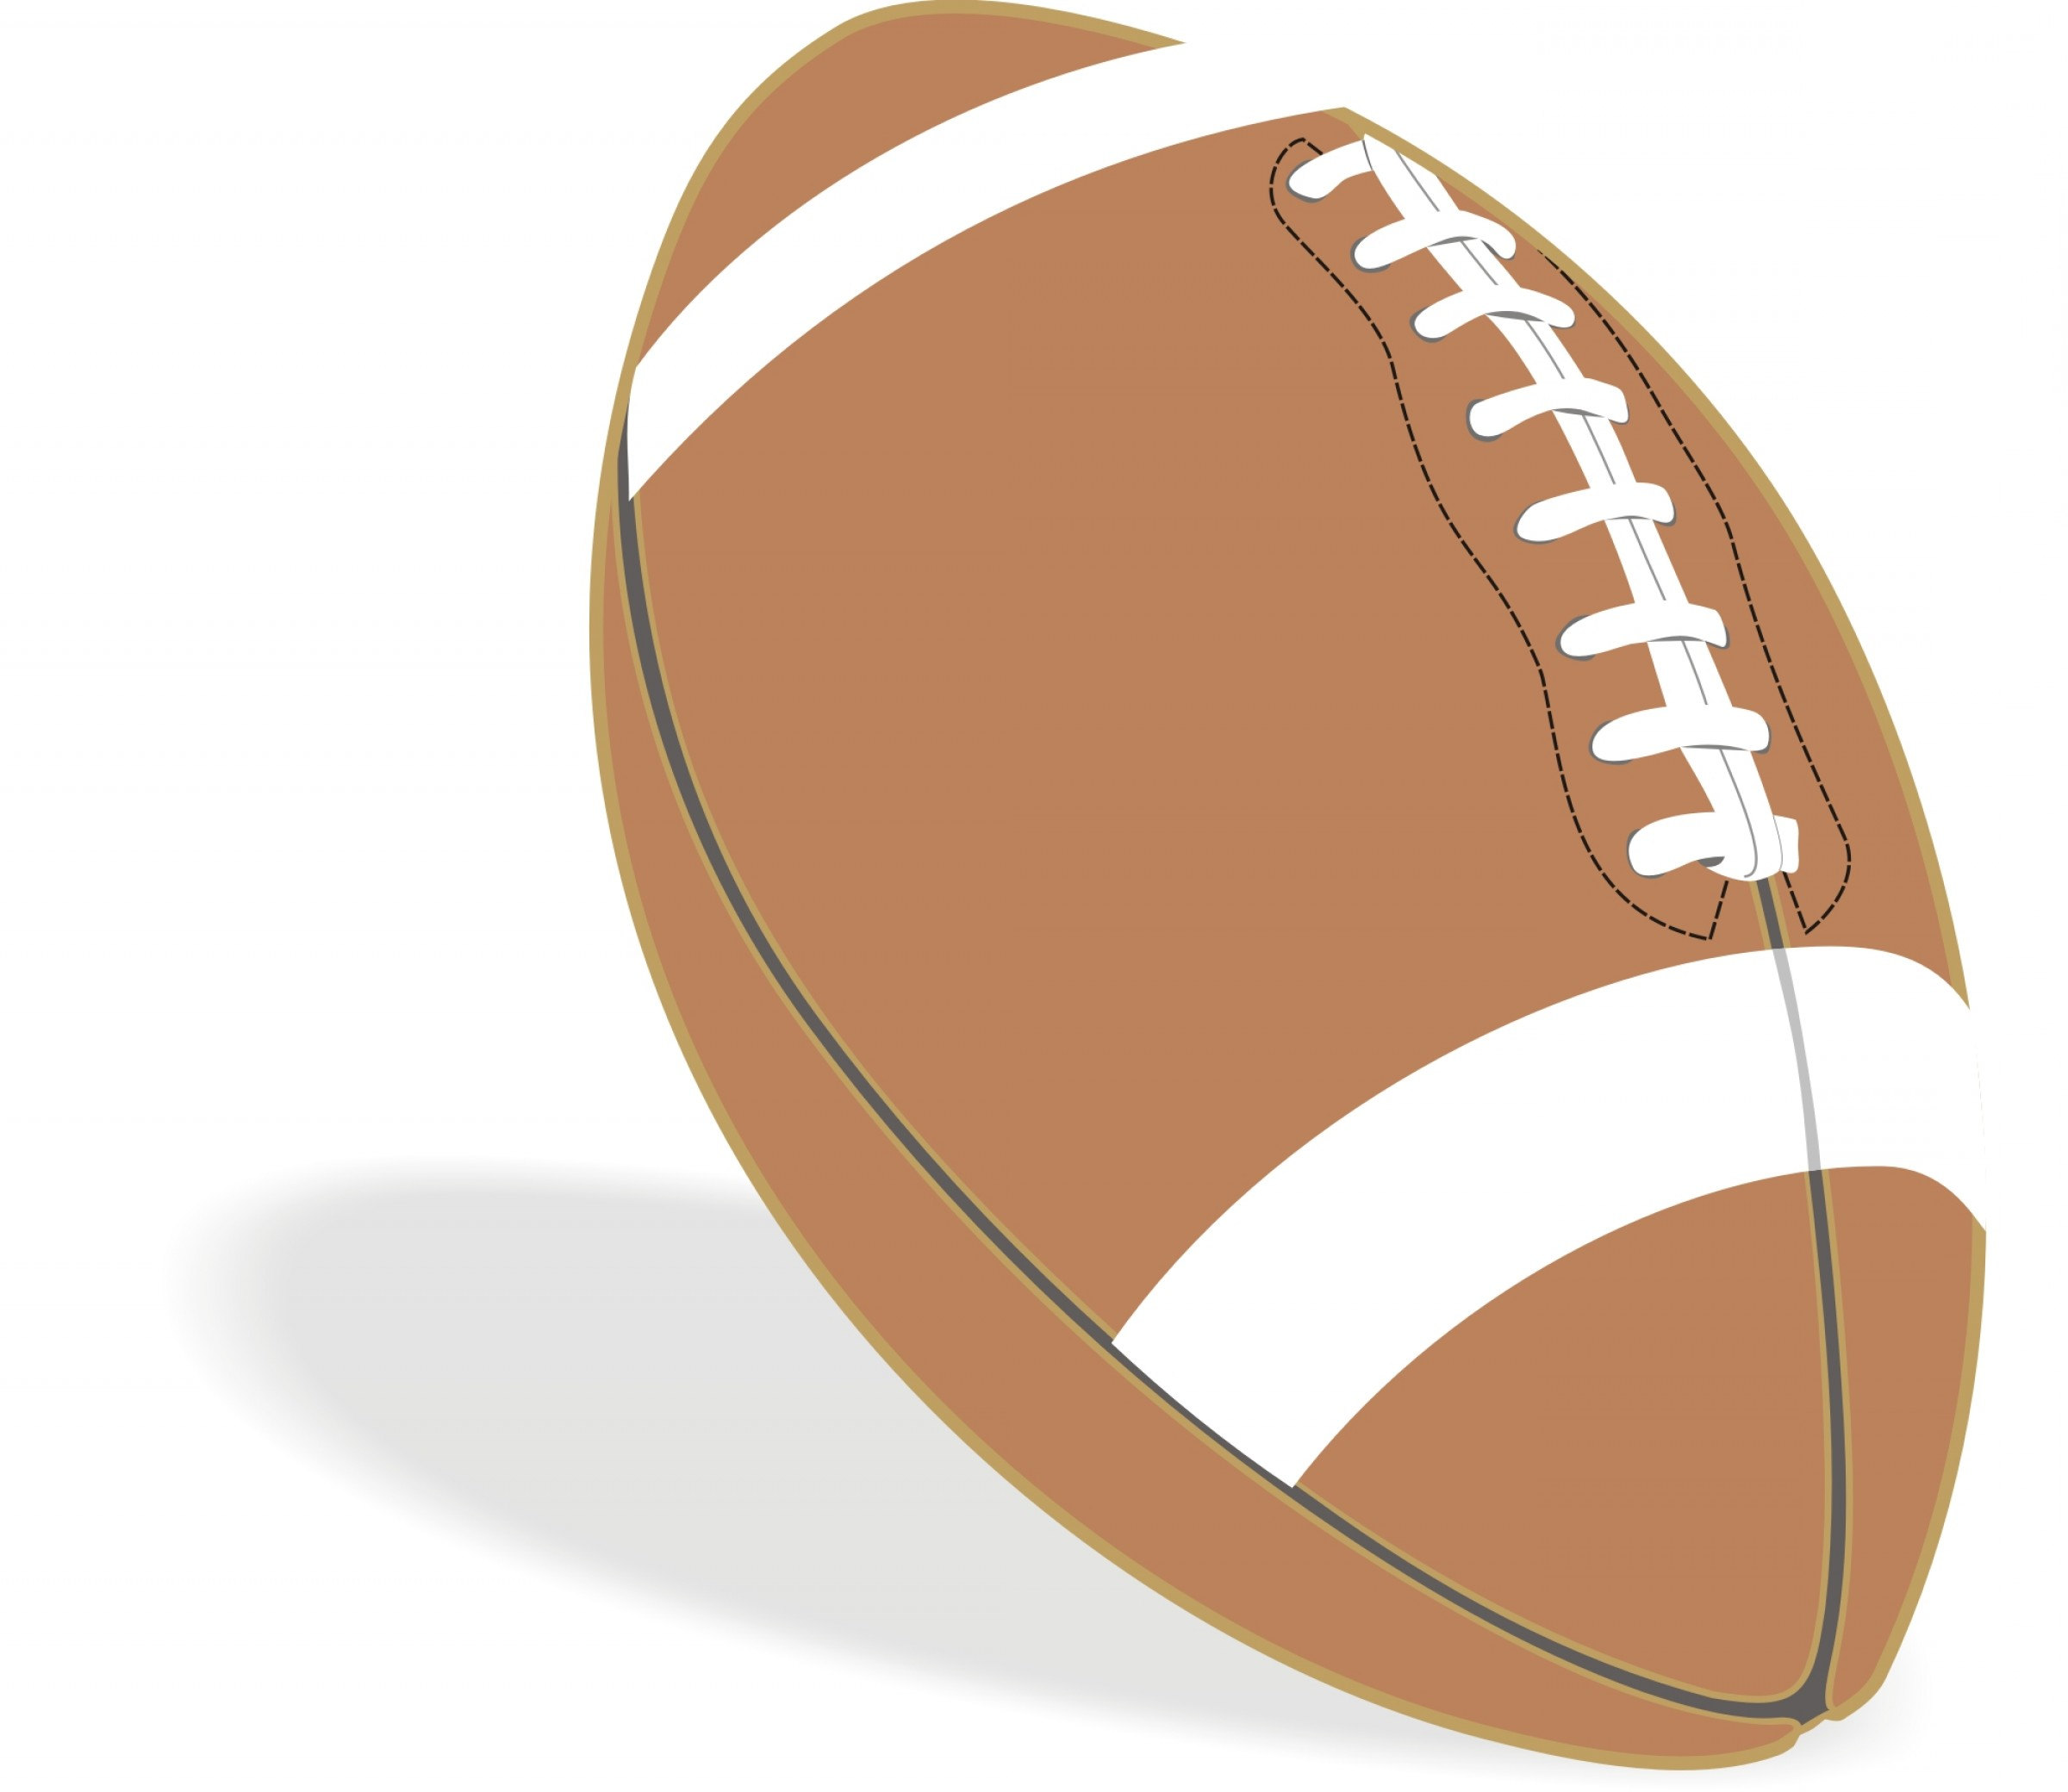 Free Football Clipart Free Graphic.